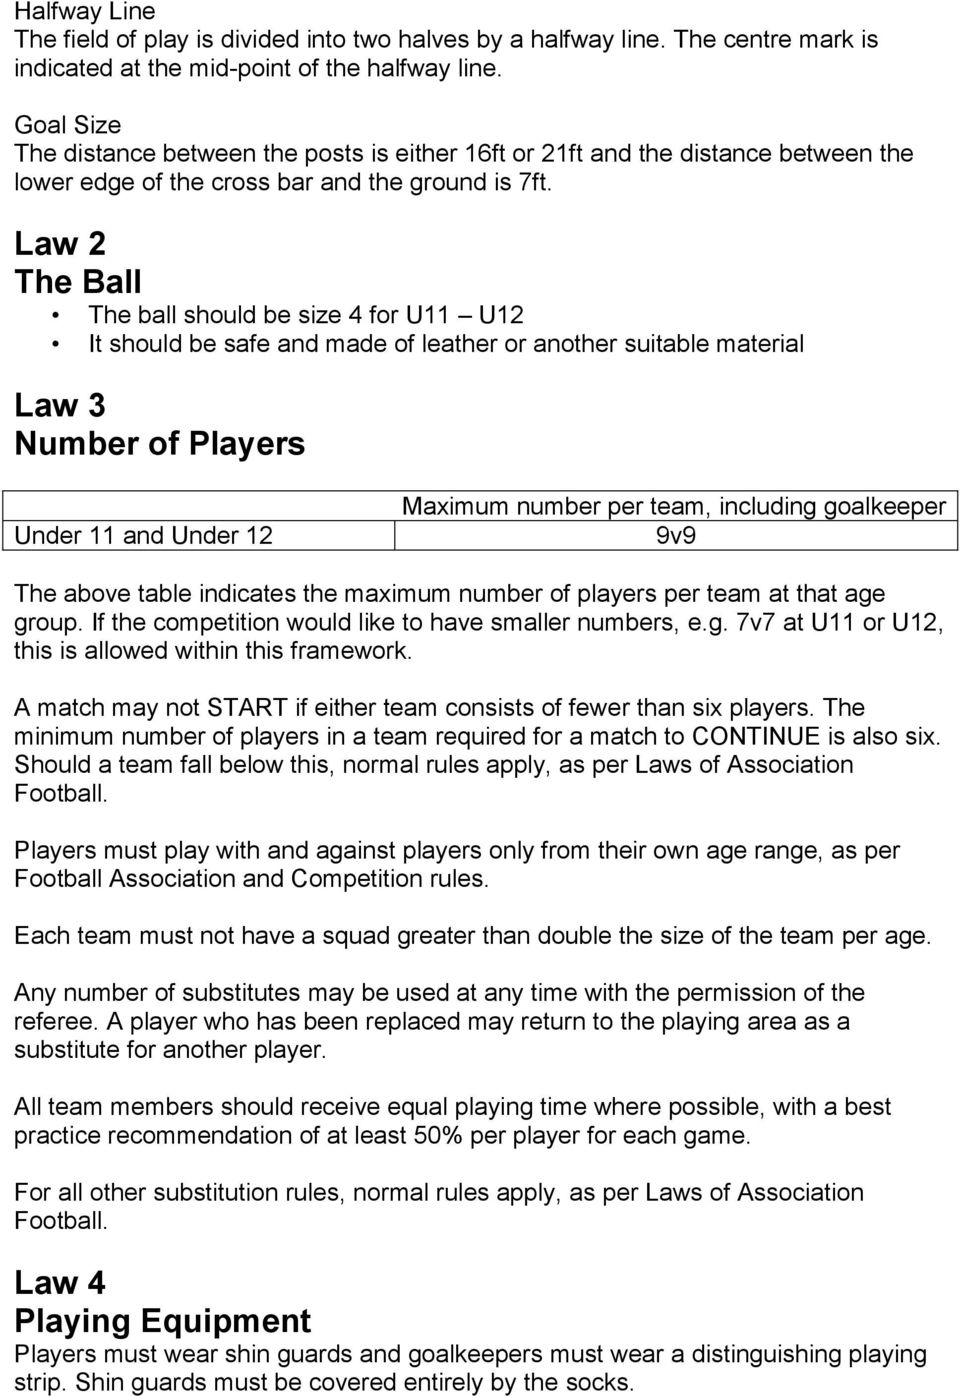 Law 2 The Ball The ball should be size 4 for U11 U12 It should be safe and made of leather or another suitable material Law 3 Number of Players Under 11 and Under 12 Maximum number per team,